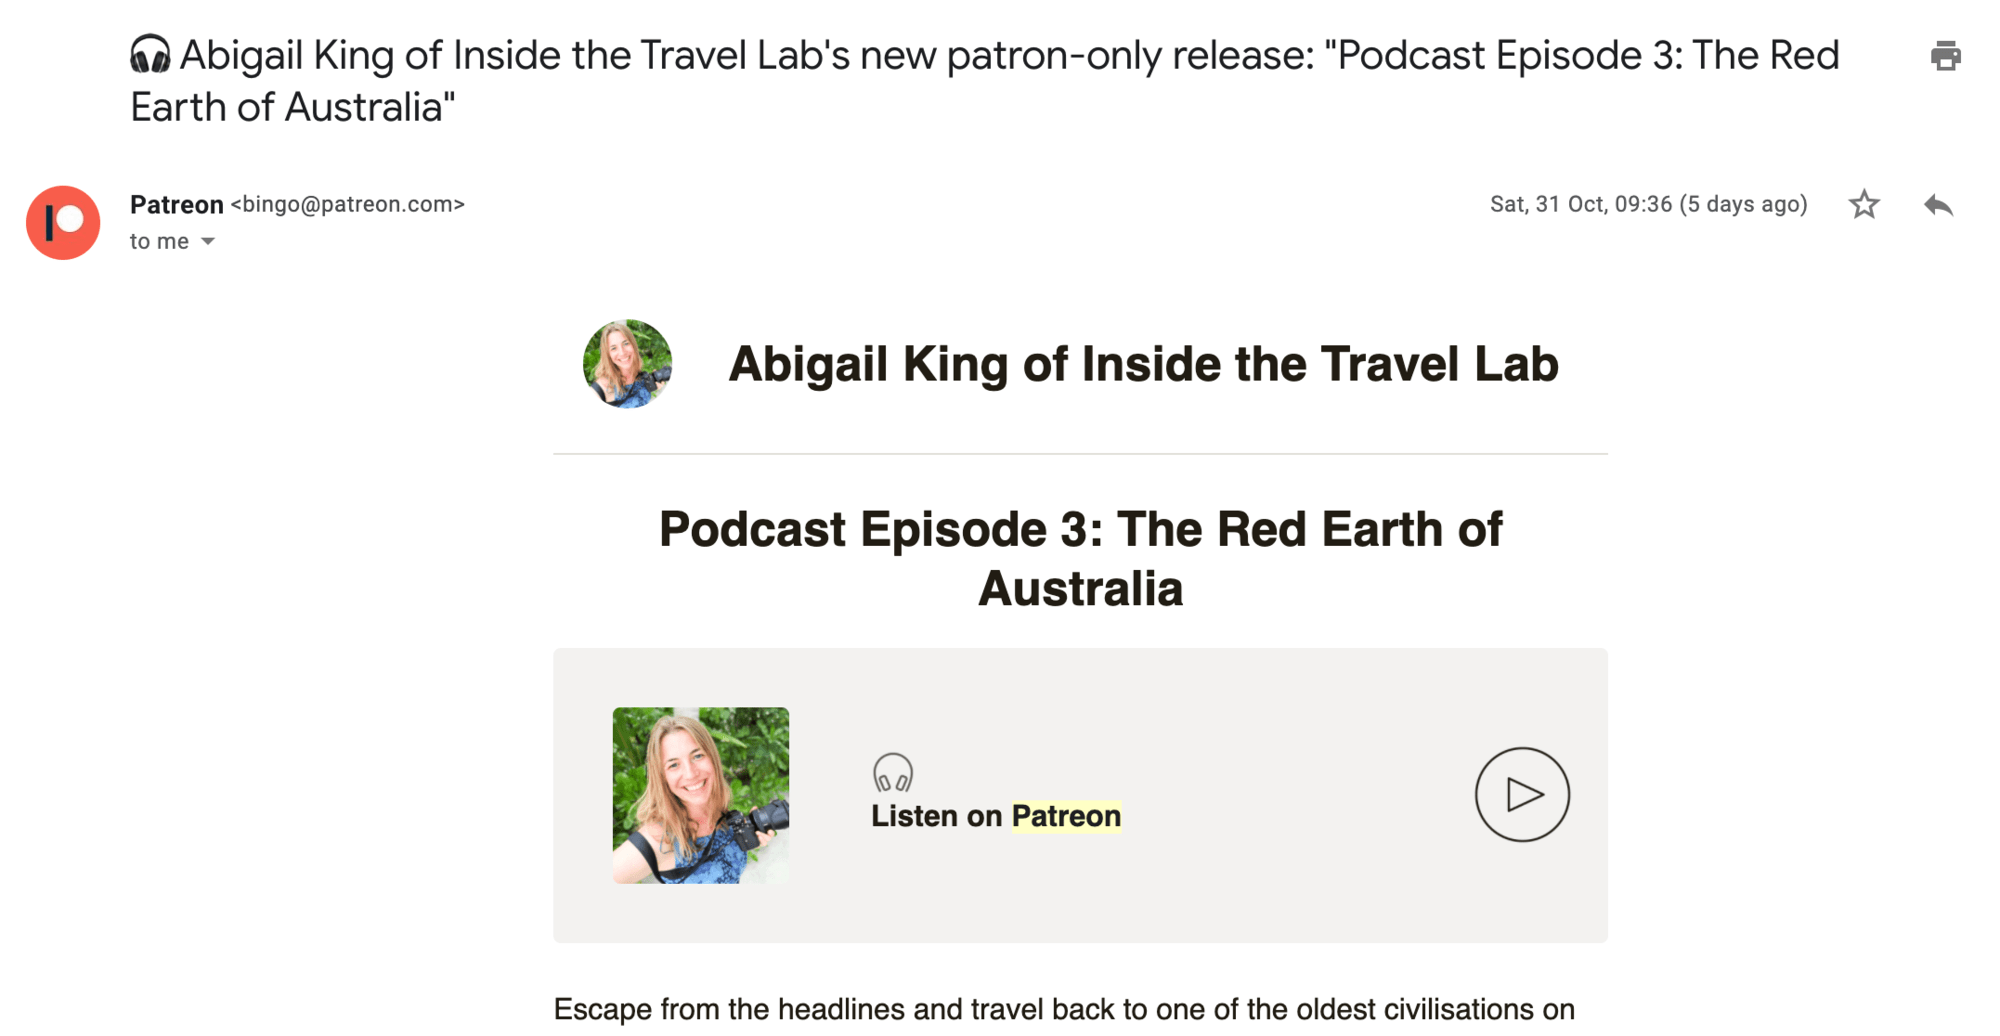 Standard email from Patreon